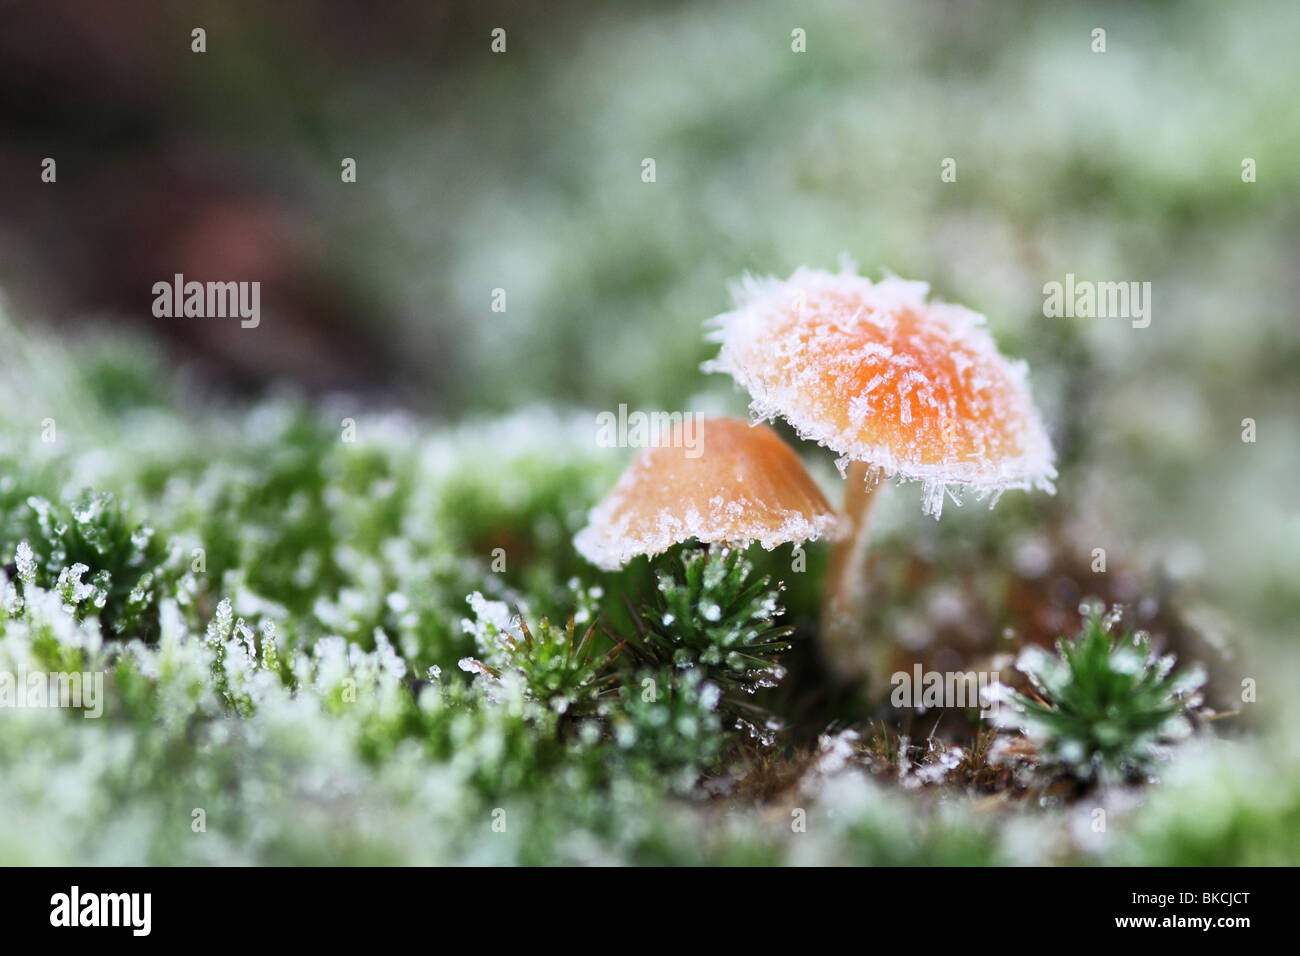 Fungi in the frost surrounded by moss. - Stock Image